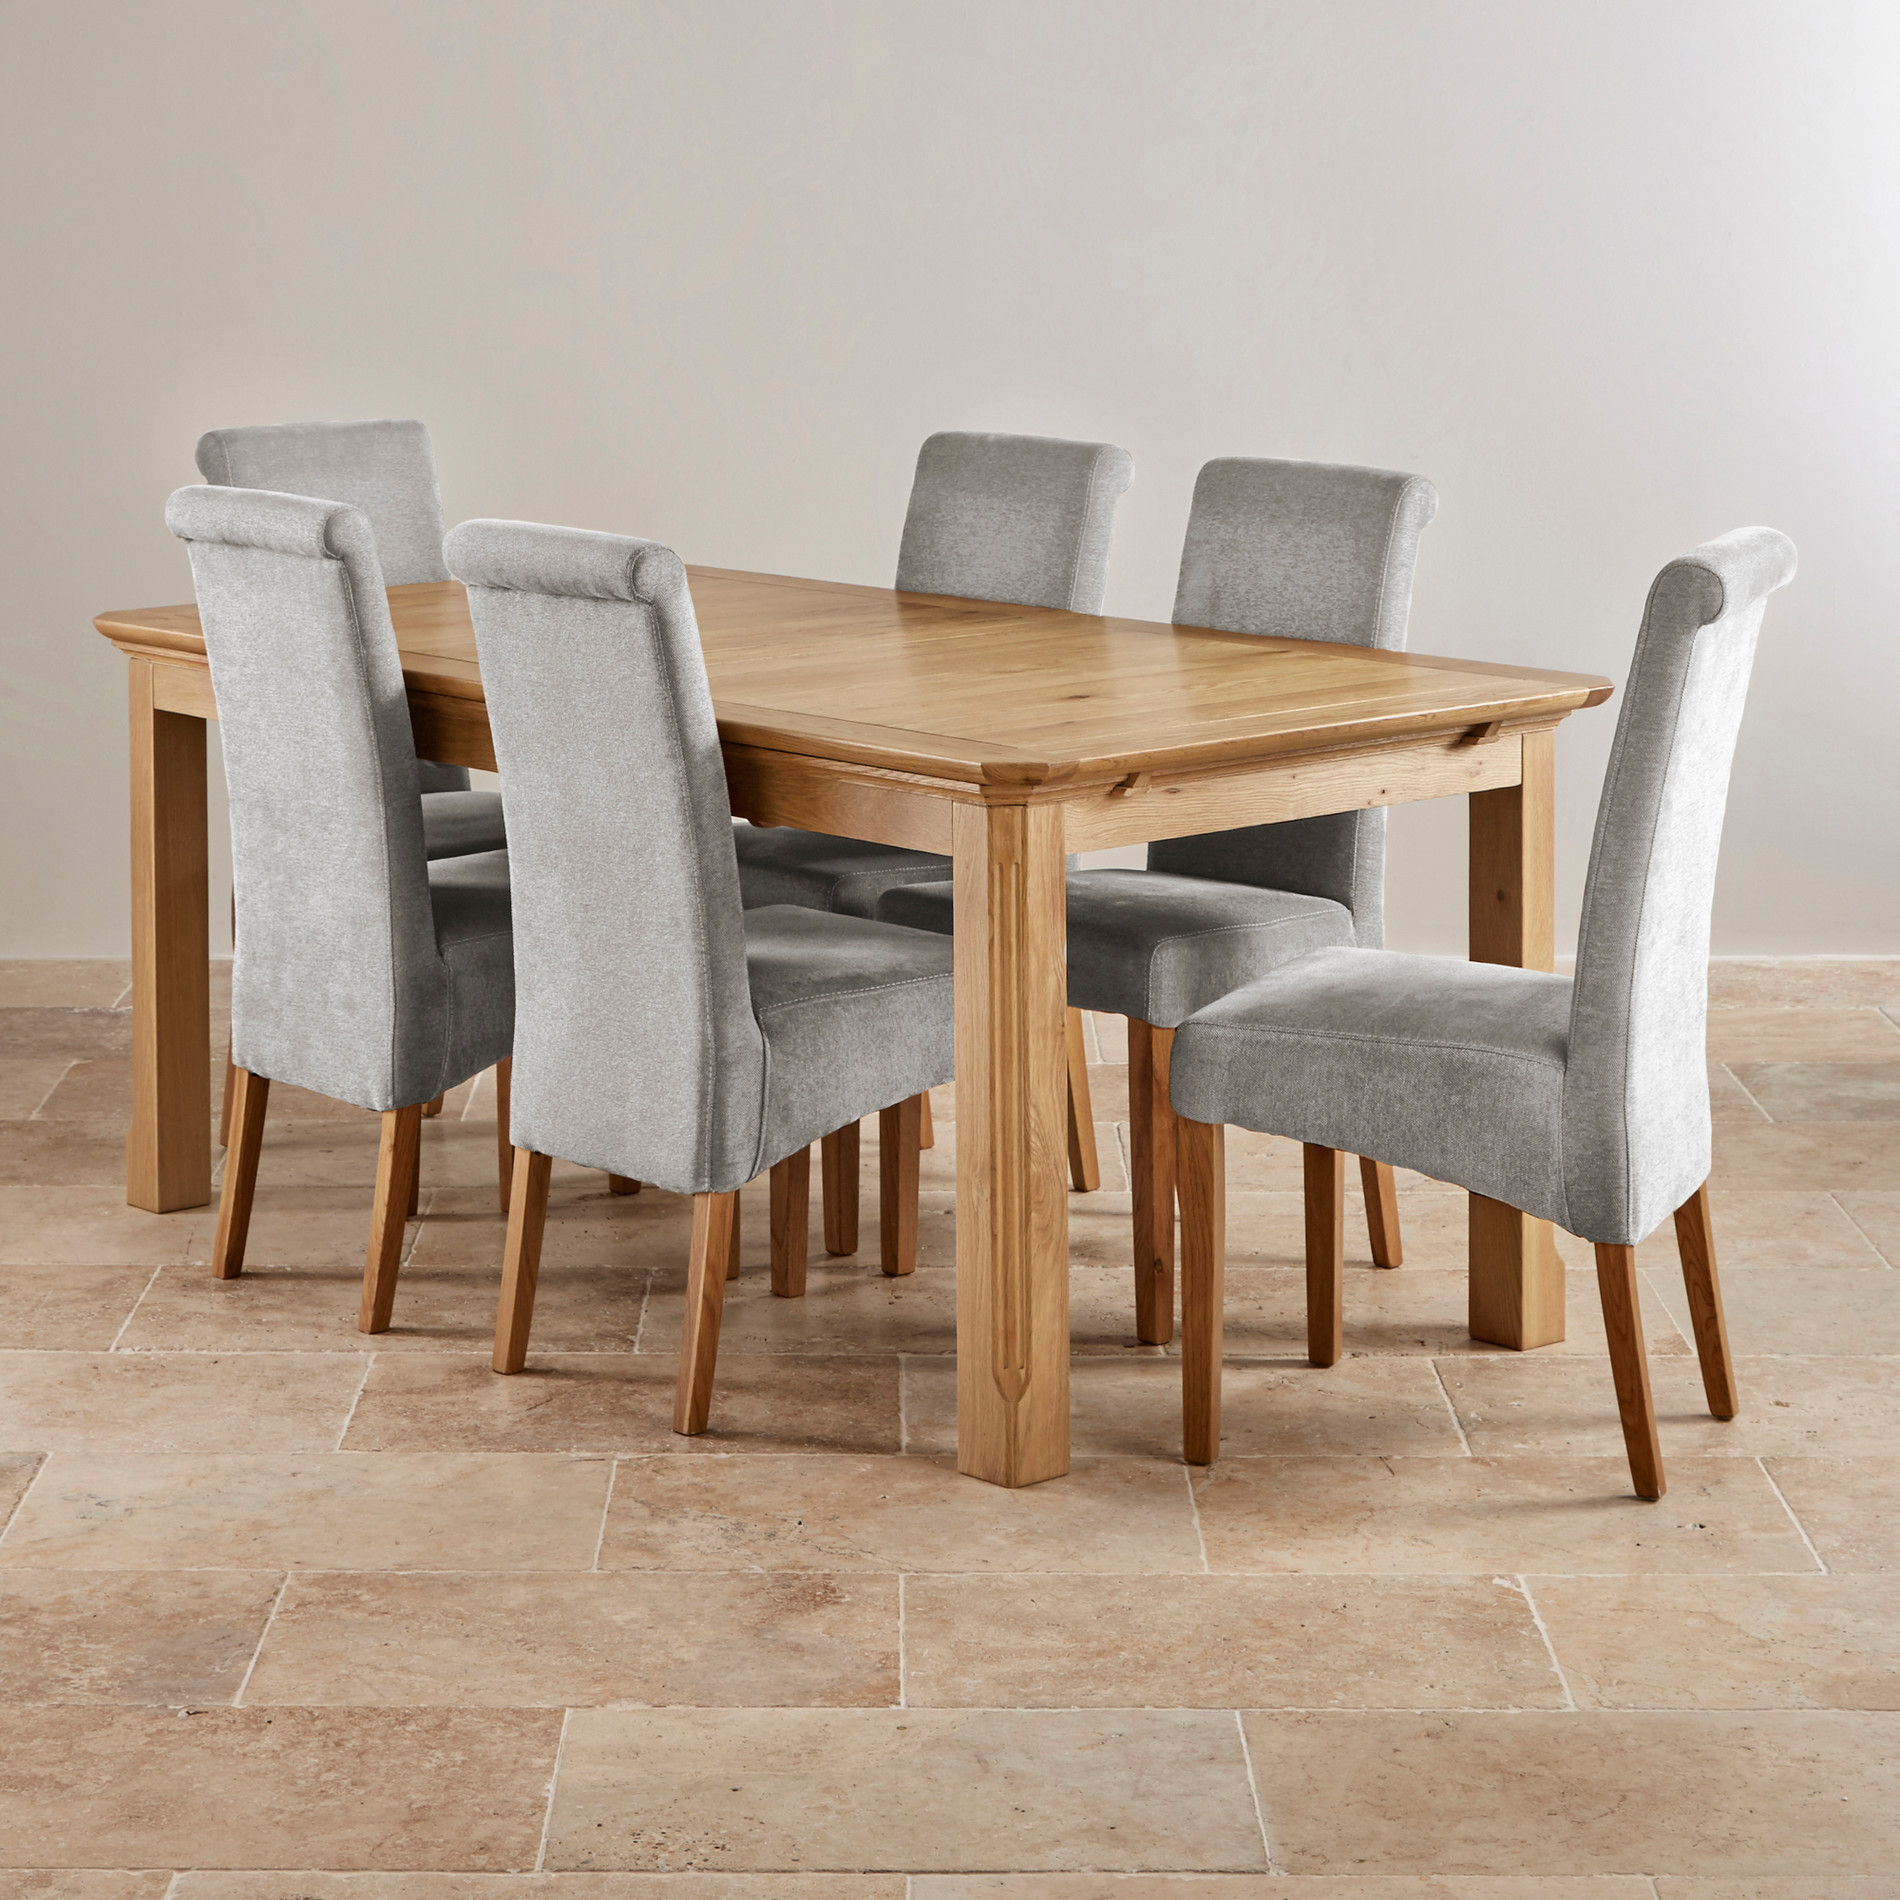 Solid oak dining room chairs for Solid oak dining table